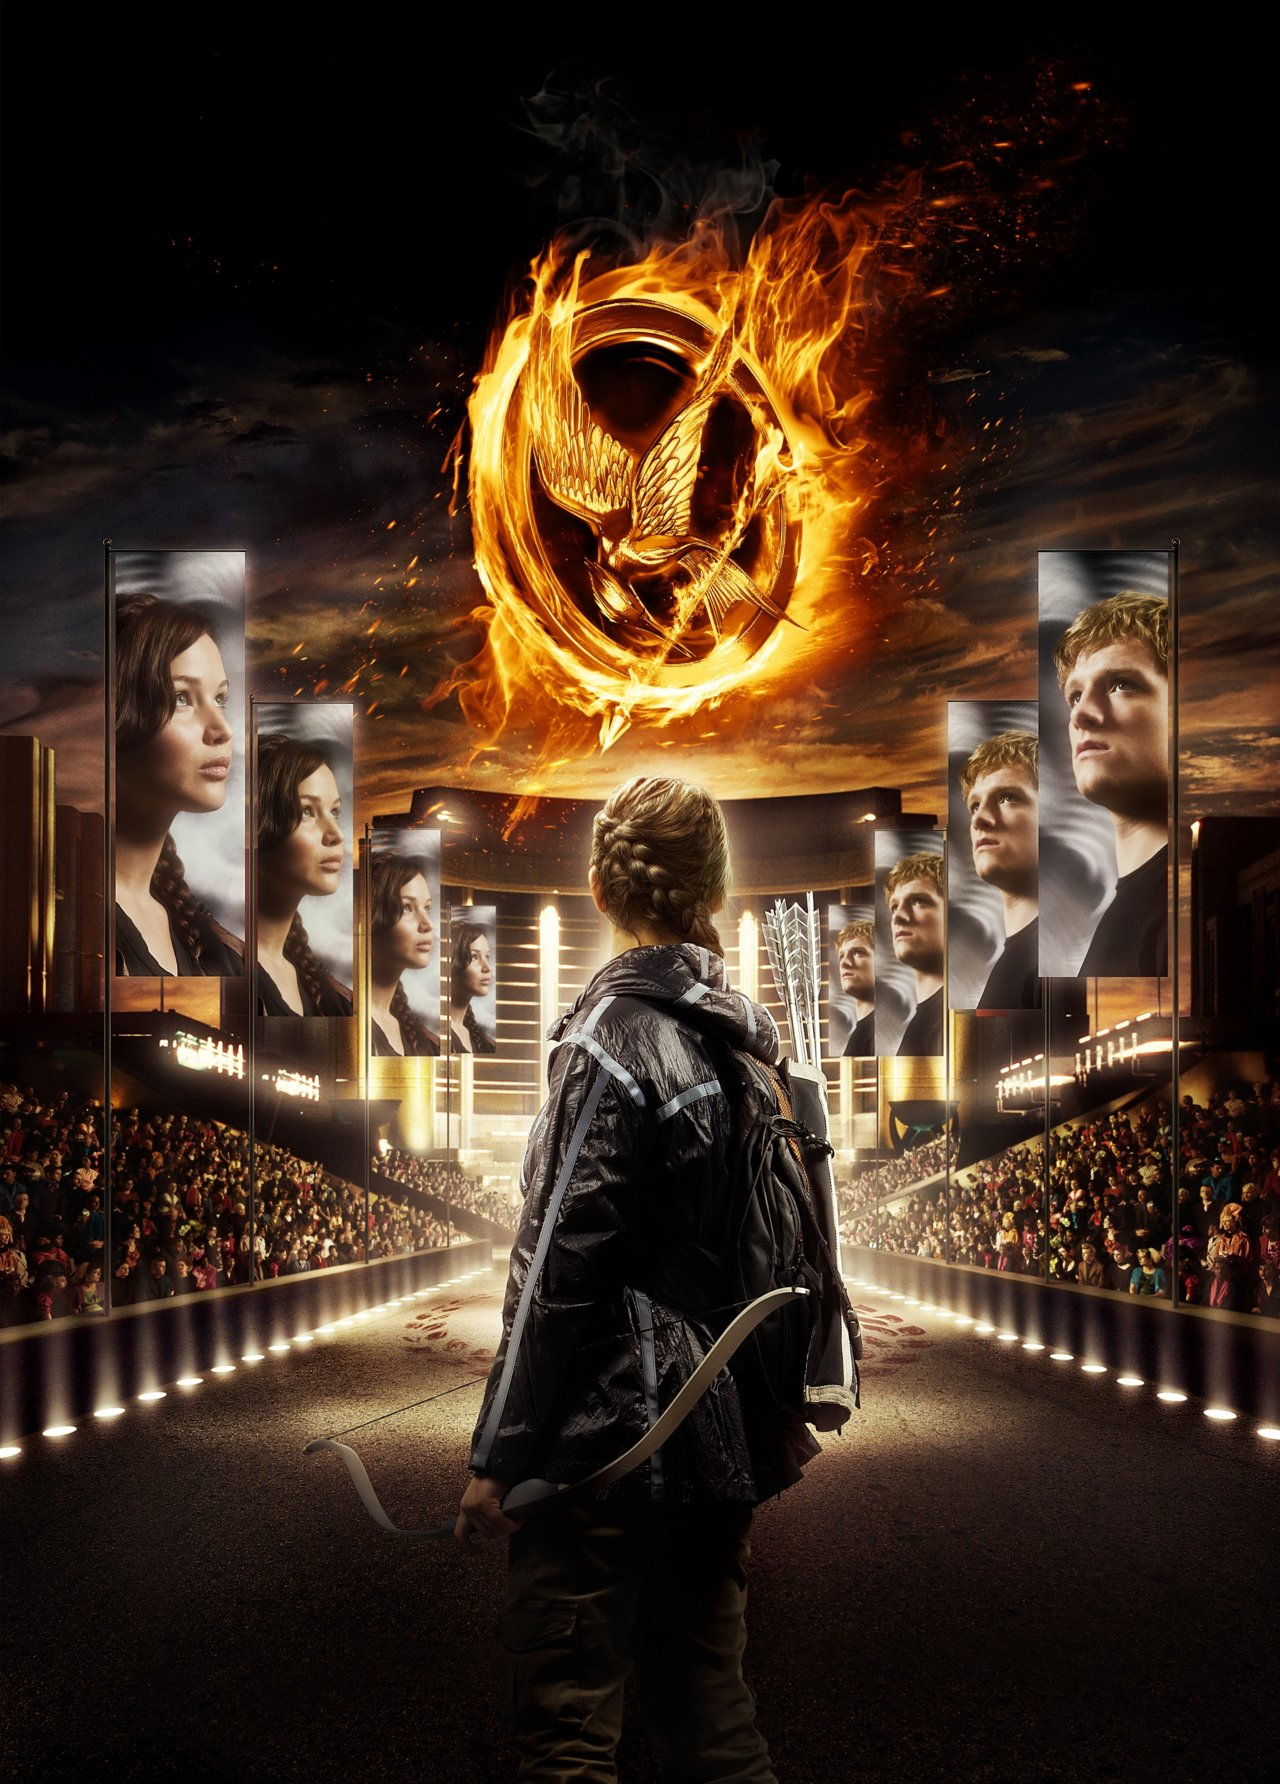 untagged THG poster - Katniss Everdeen Photo (29266811 ...